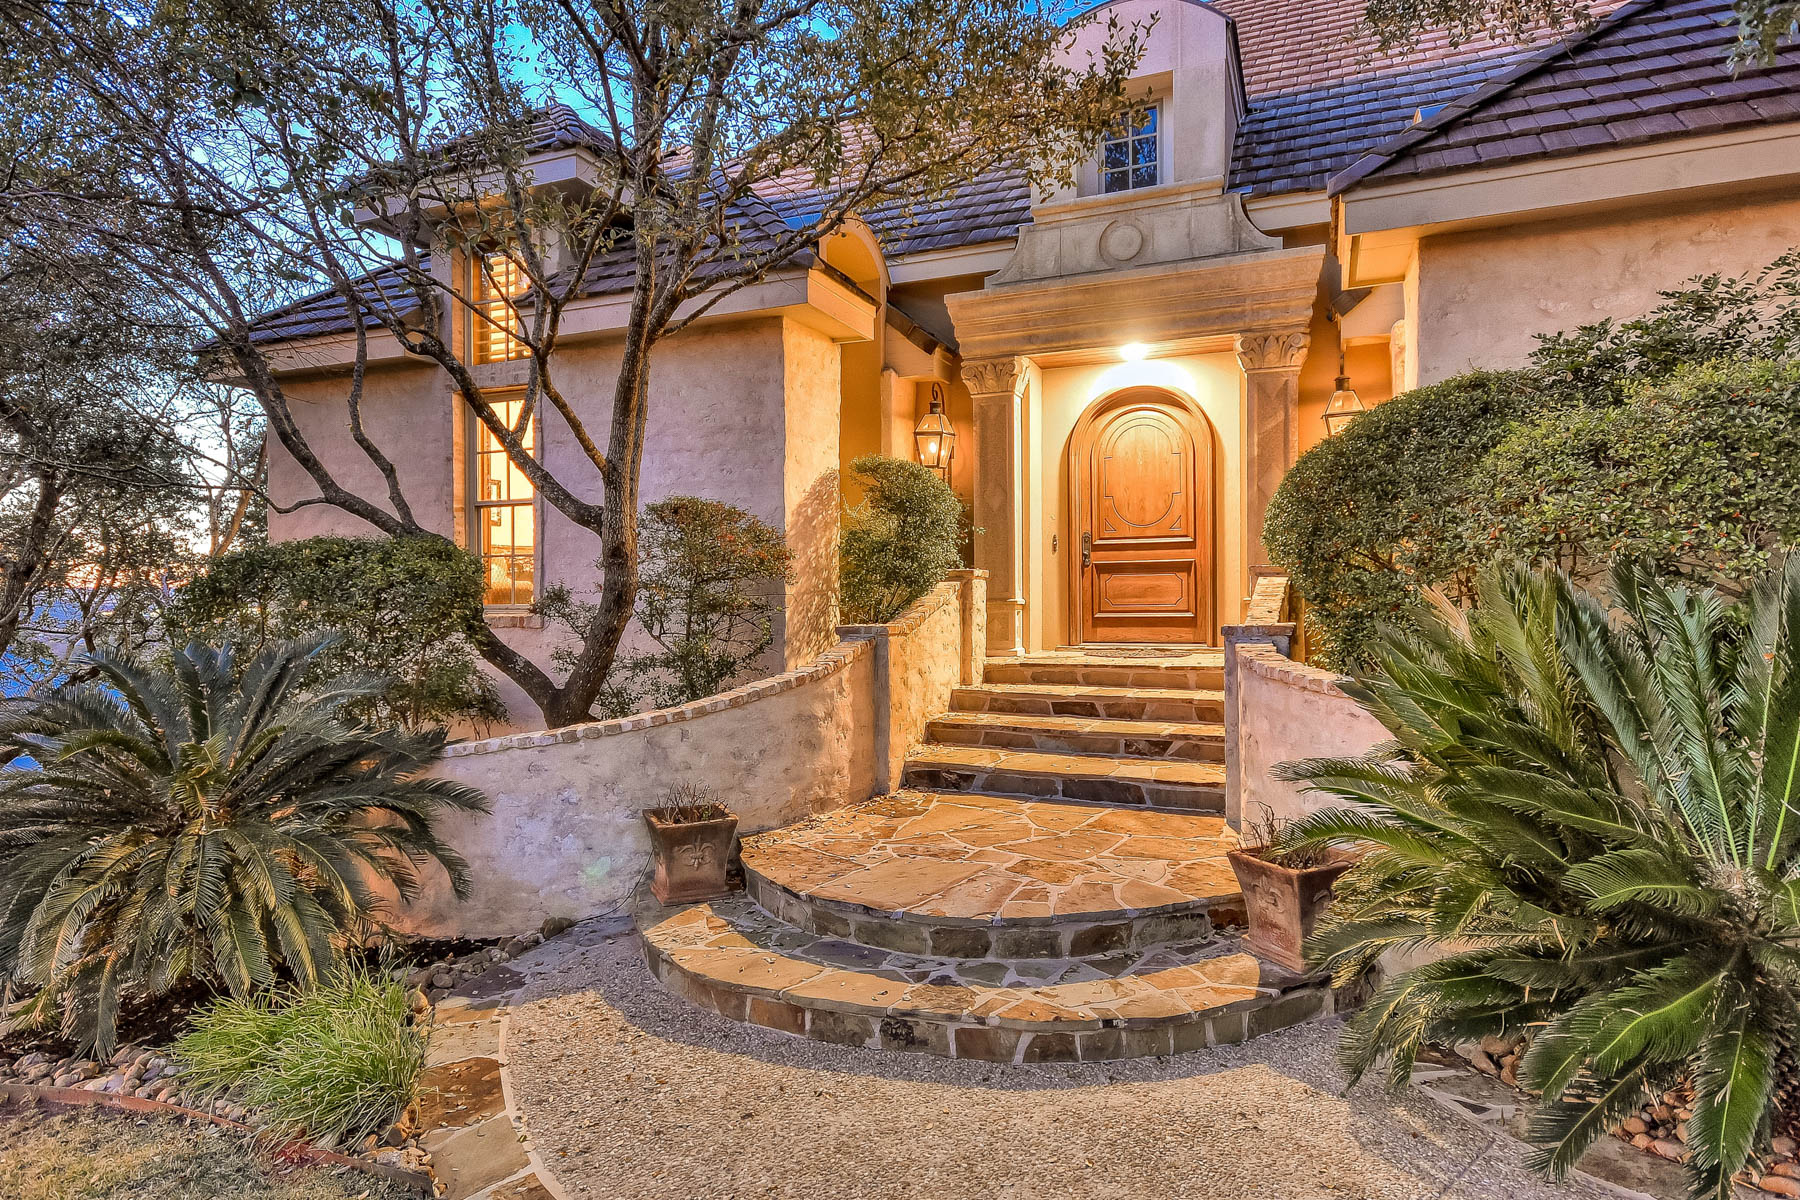 Single Family Home for Sale at Private Manor perched in the hills of The Dominion 44 Arnold Palmer San Antonio, Texas 78257 United States